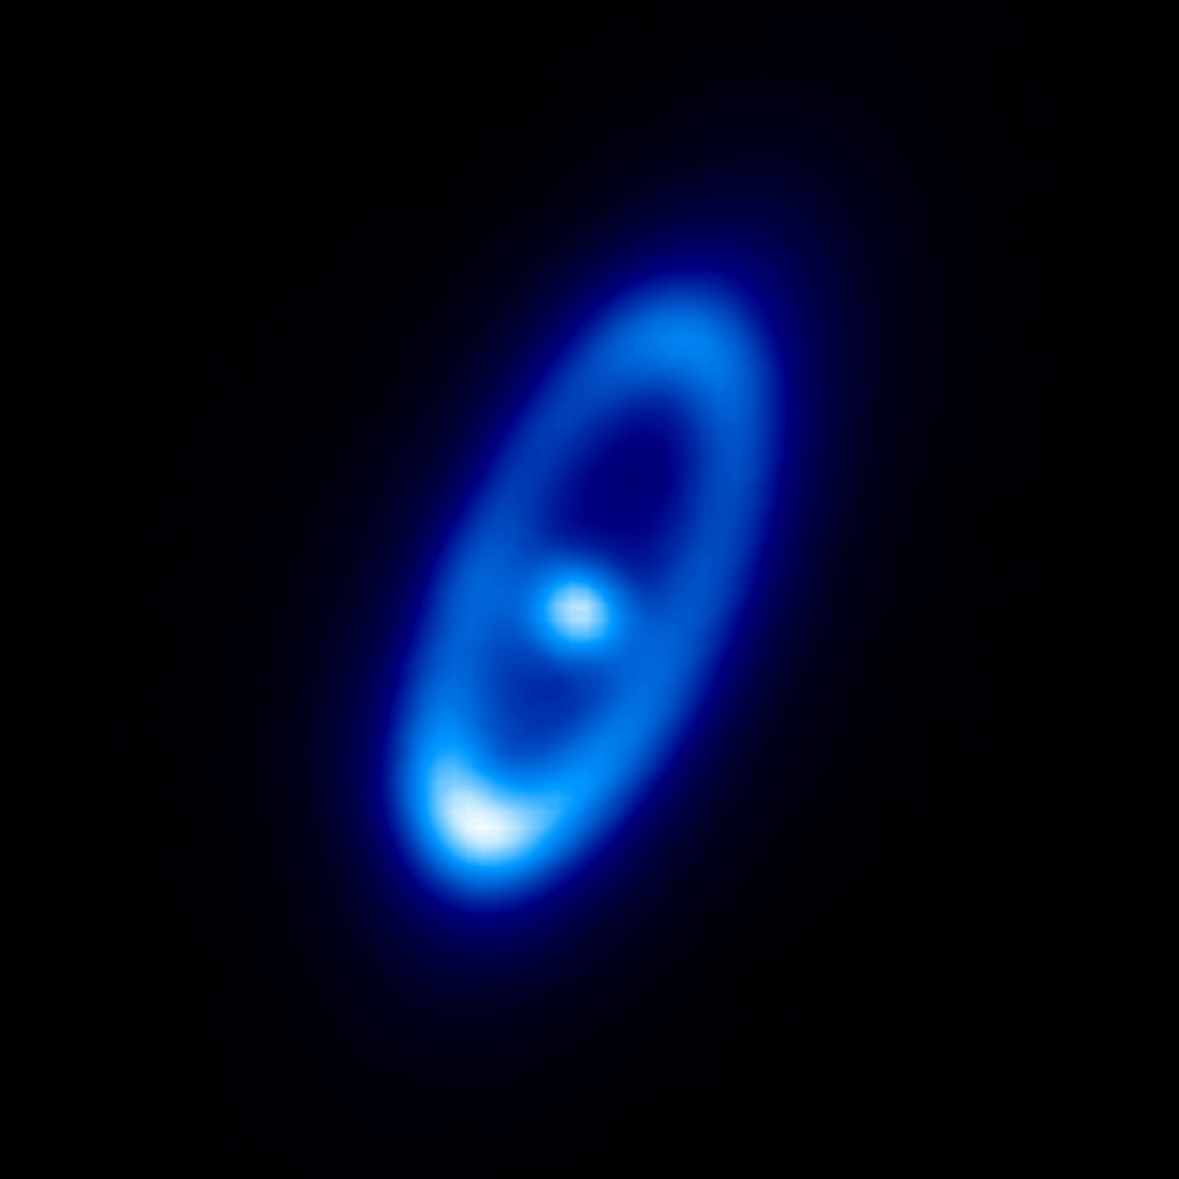 Herschel PACS 70 μm image of Fomalhaut